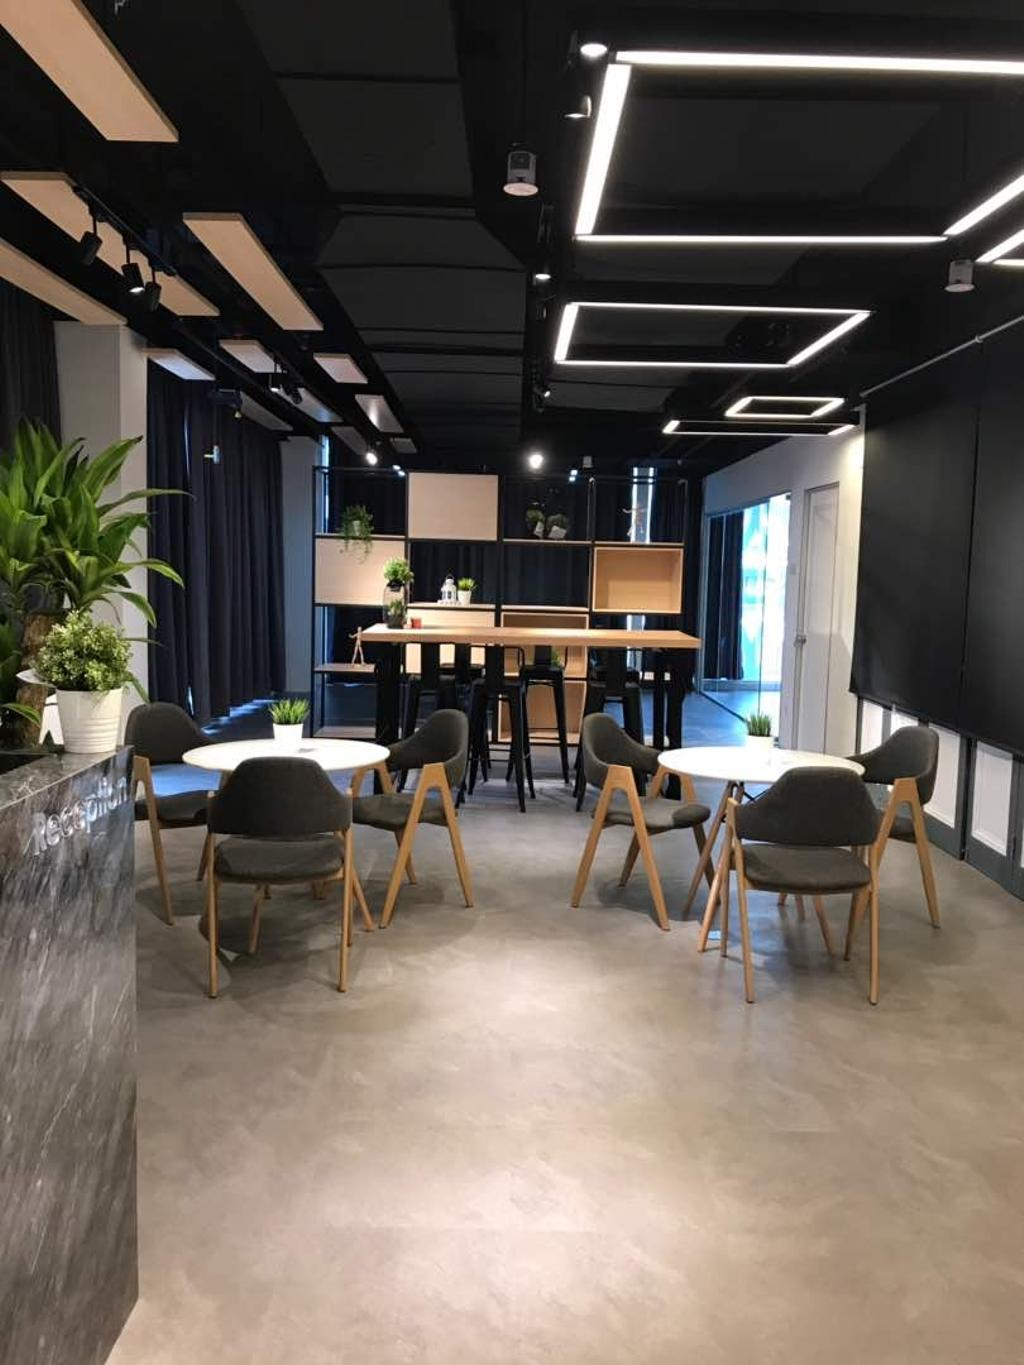 We Pays Office, Mahkota Parade, Commercial, Interior Designer, Trivia Group Sdn. Bhd., Modern, Contemporary, Flora, Jar, Plant, Potted Plant, Pottery, Vase, Dining Table, Furniture, Table, Chair, Couch